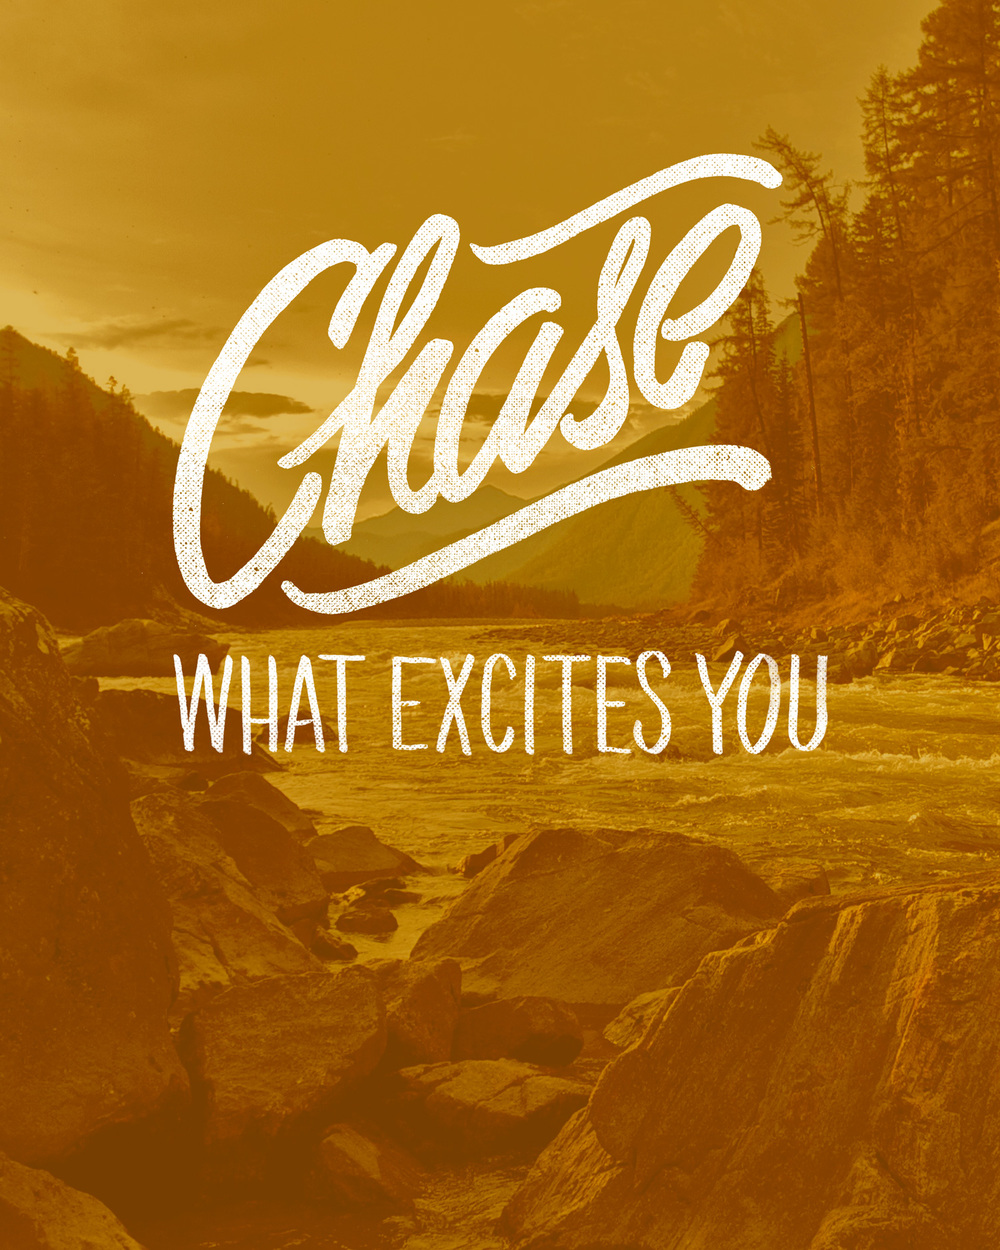 chase what excites you